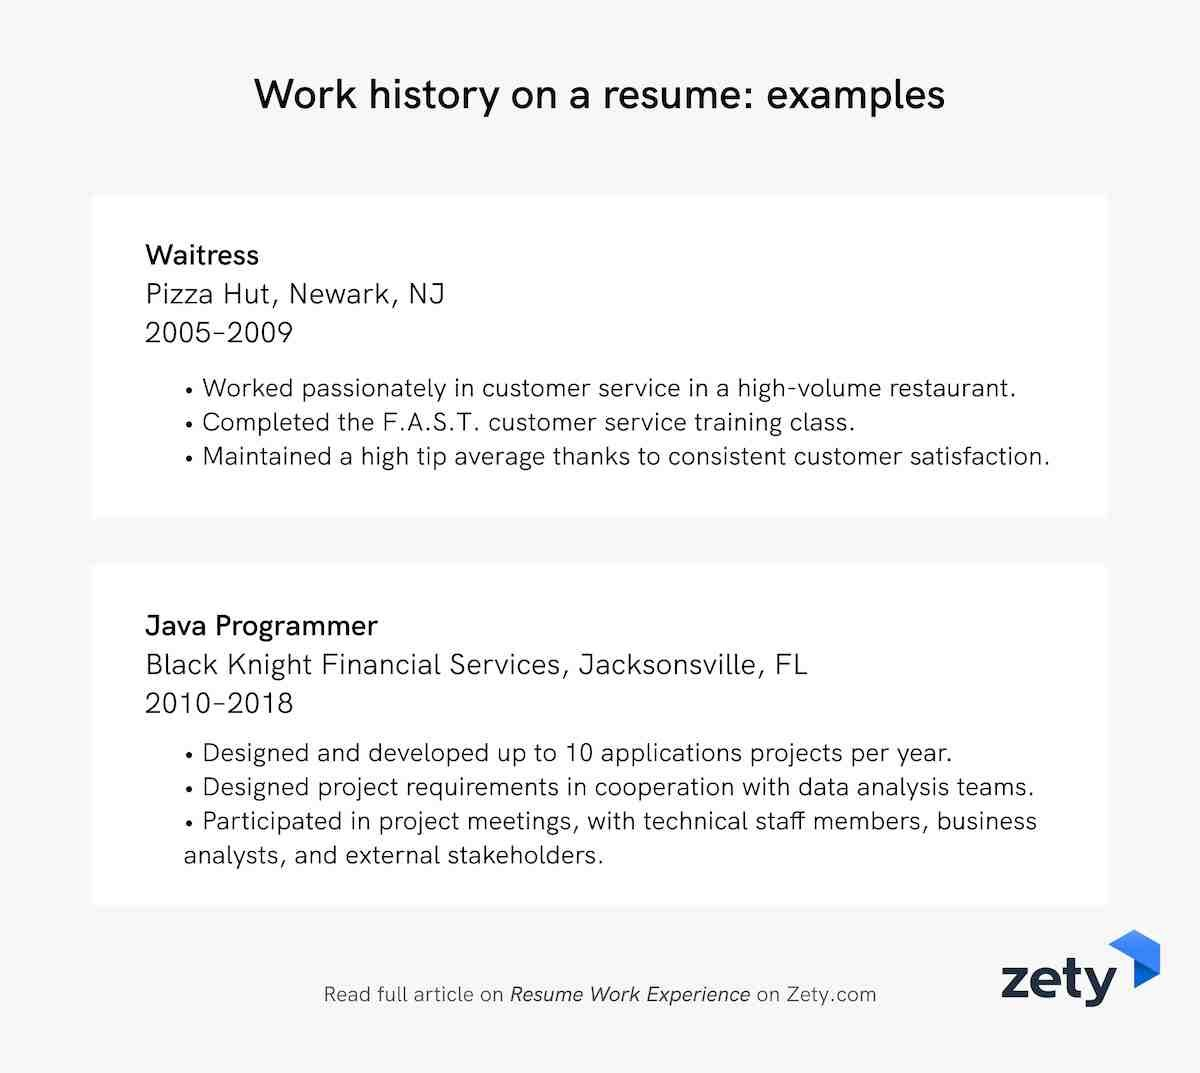 resume work experience history job description examples for jobs with on python Resume Resume Examples For Jobs With Experience